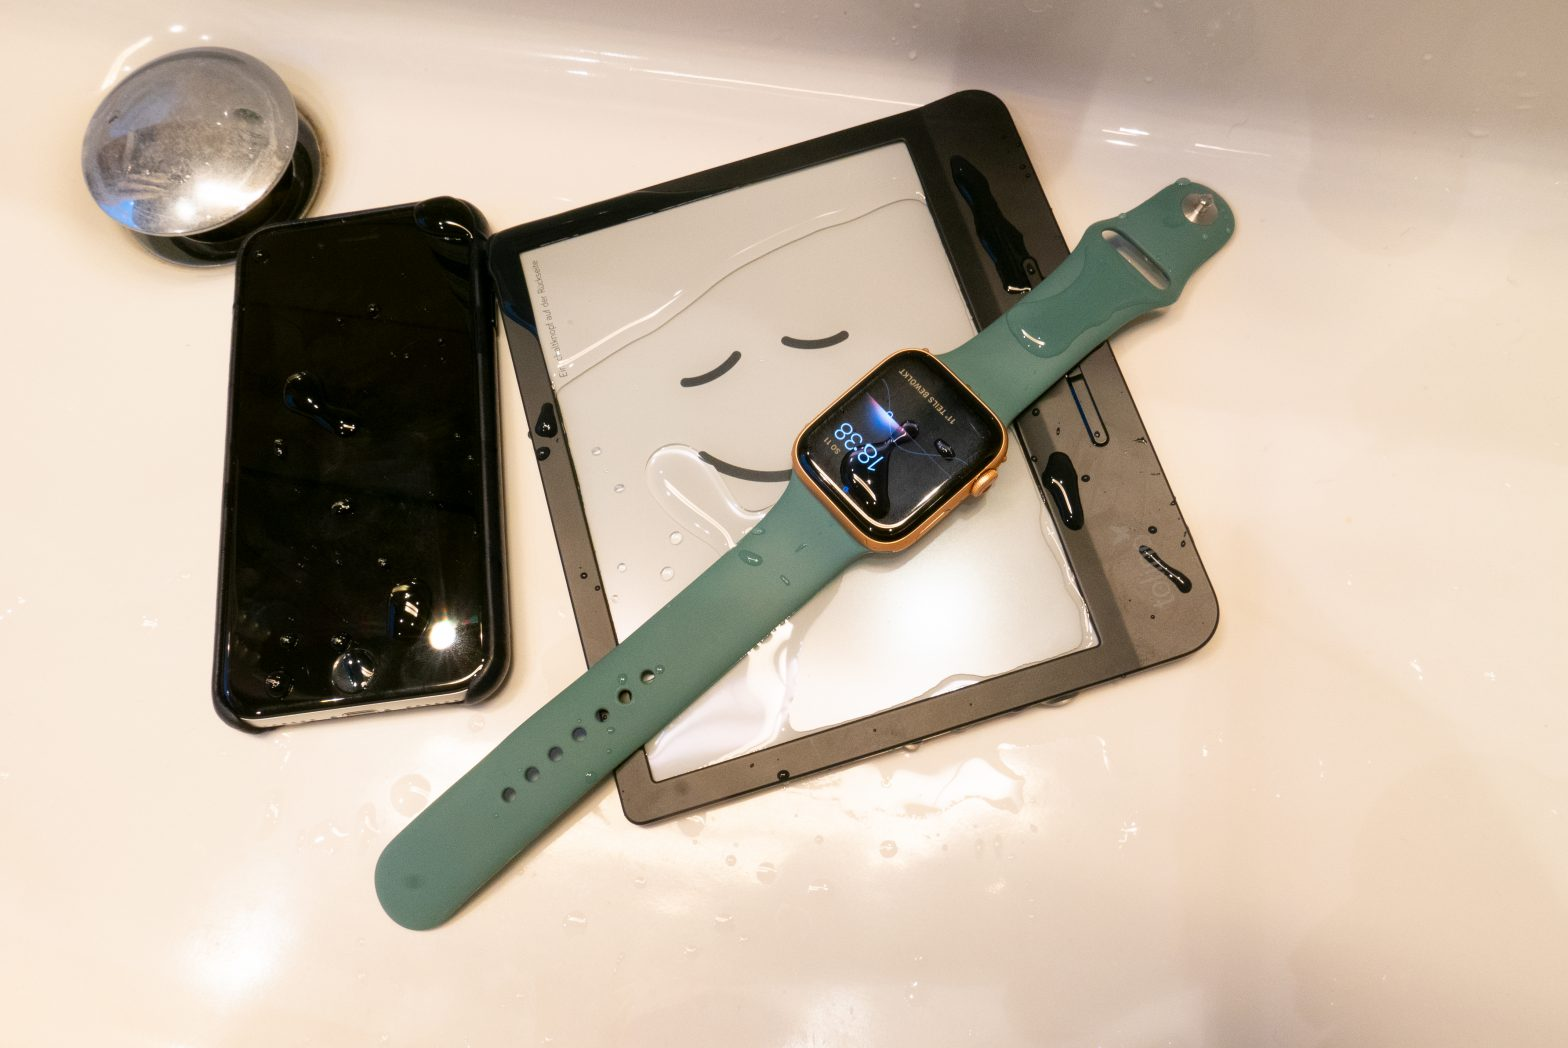 An iPhone, Apple Watch and Tolino e-book reader spattered with water.